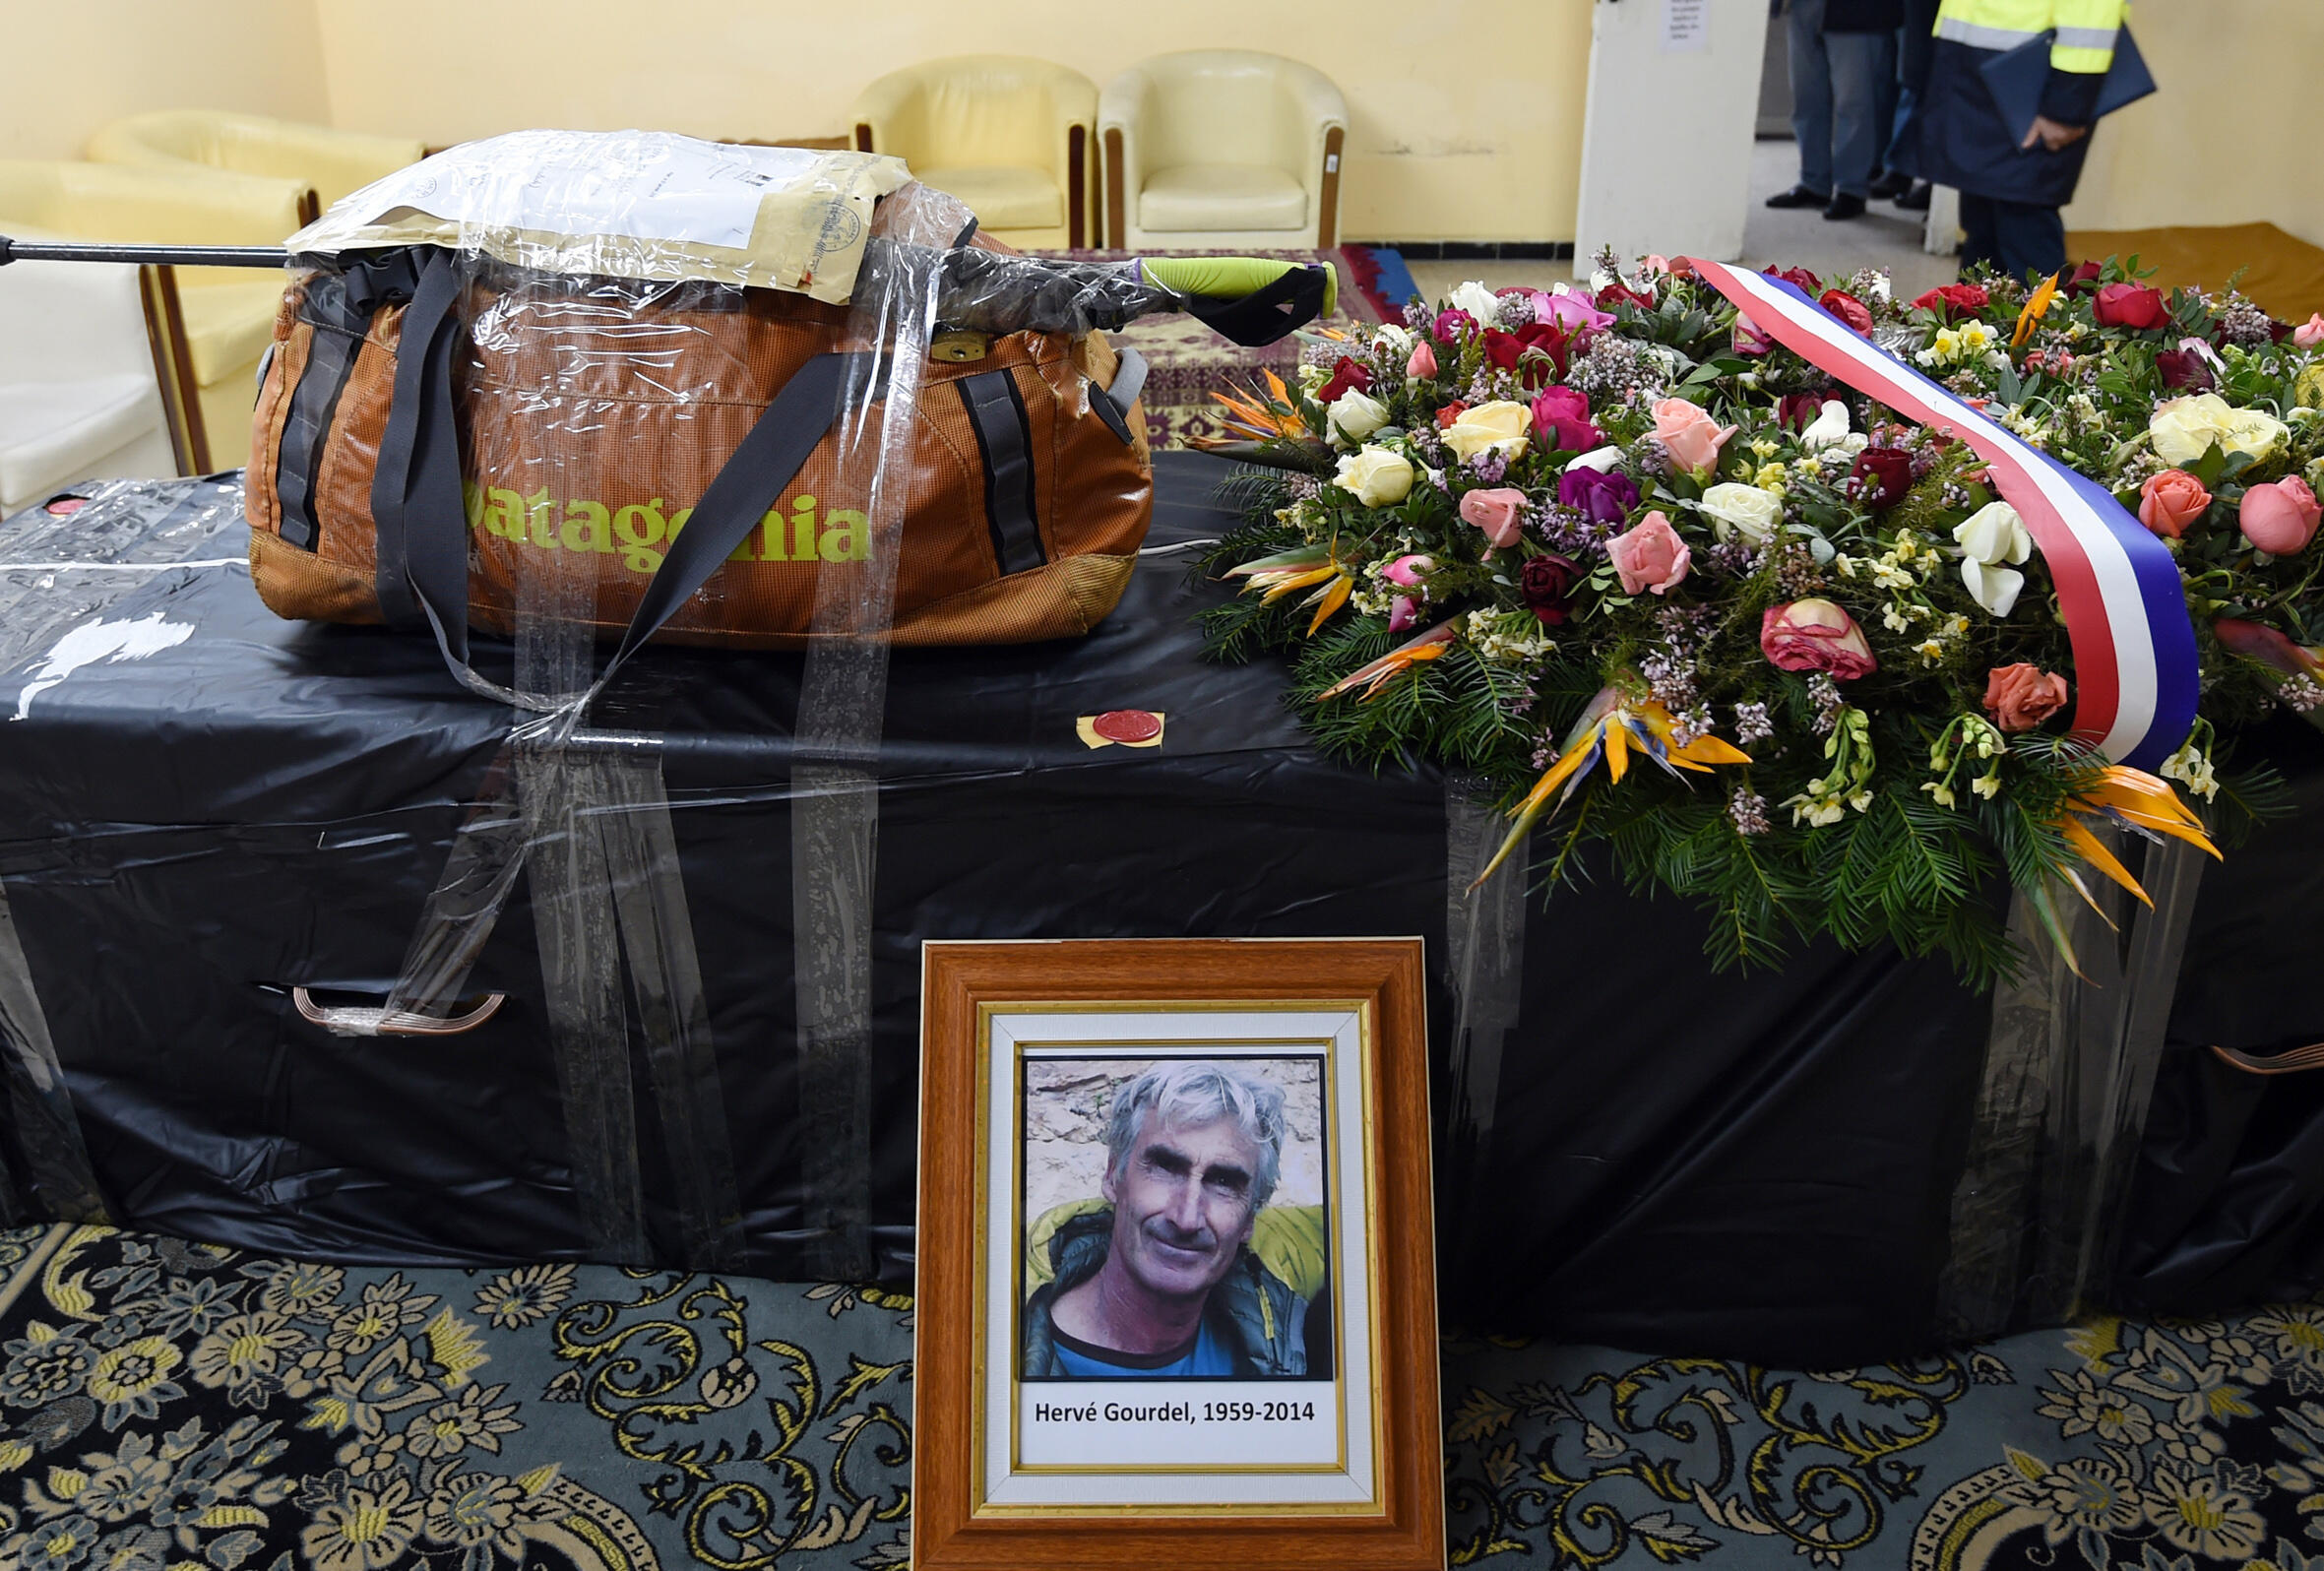 Gourdel's coffin, with the hiker's backpack and walking stick, pictured before being flown to Paris in January 2015.